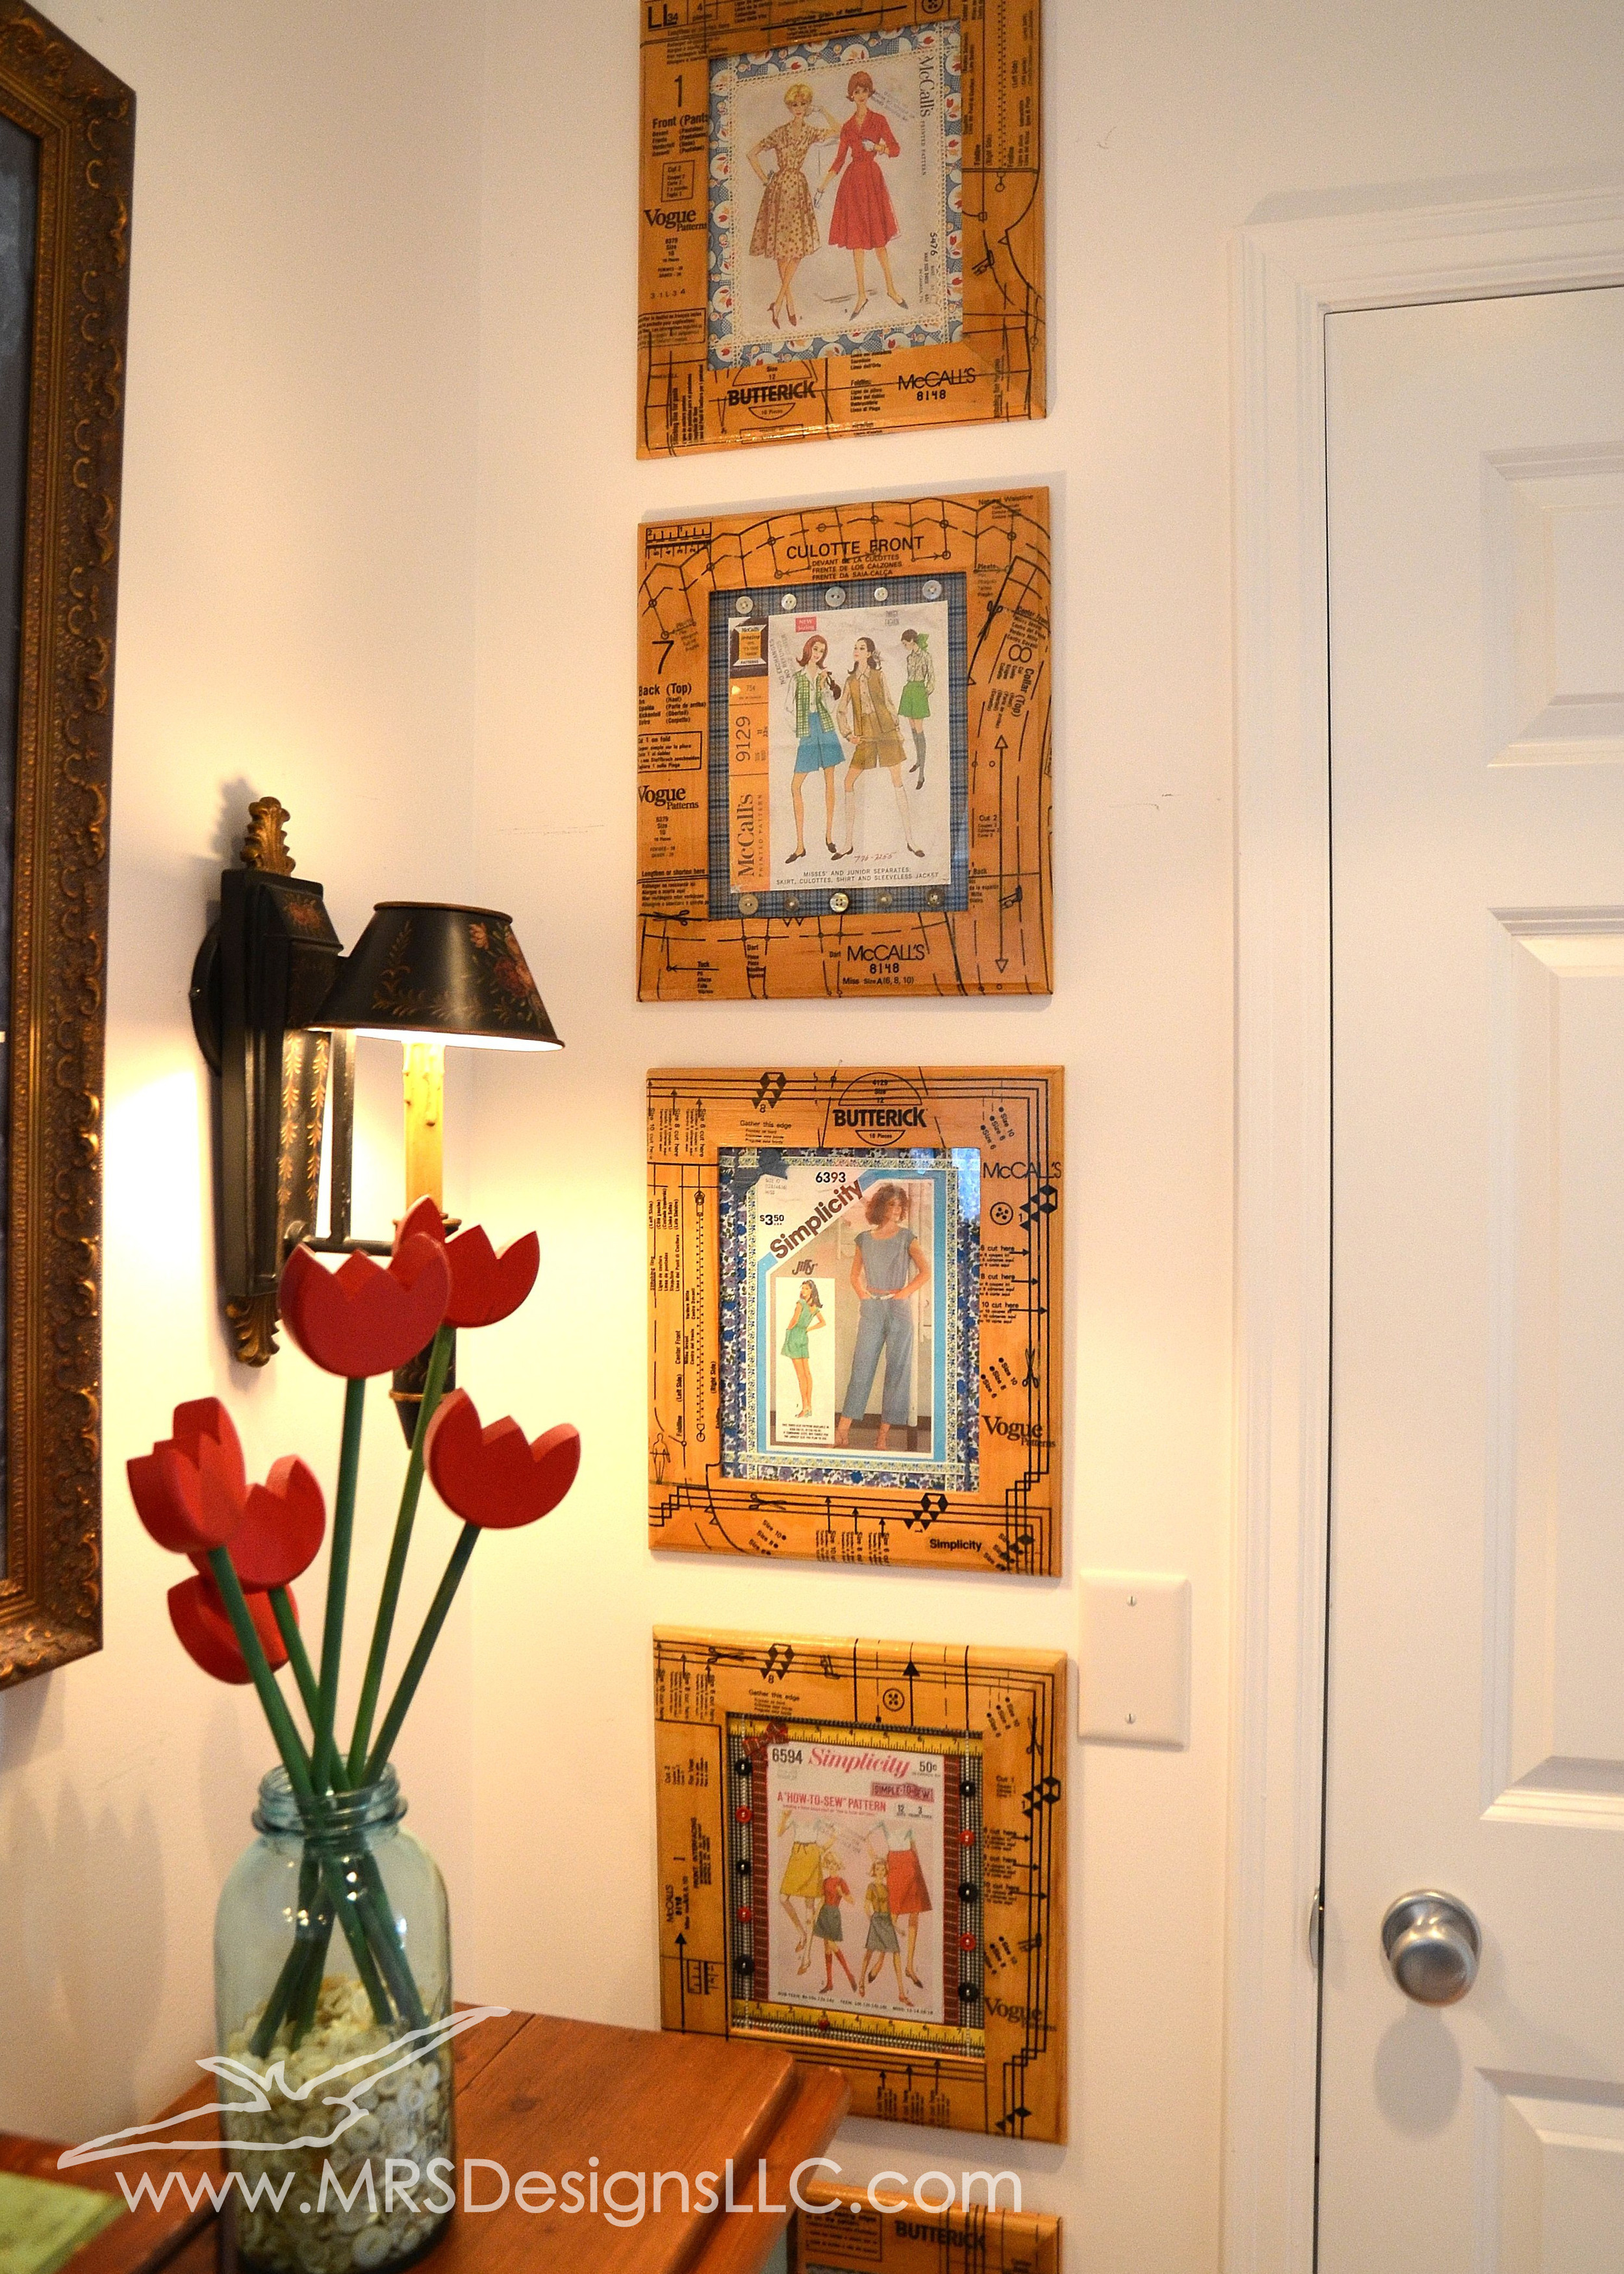 MRS Designs Blog - Decoupage unfinished frames with sewing patterns for a fun crafty look! Use vintage patterns you have used for a keepsake